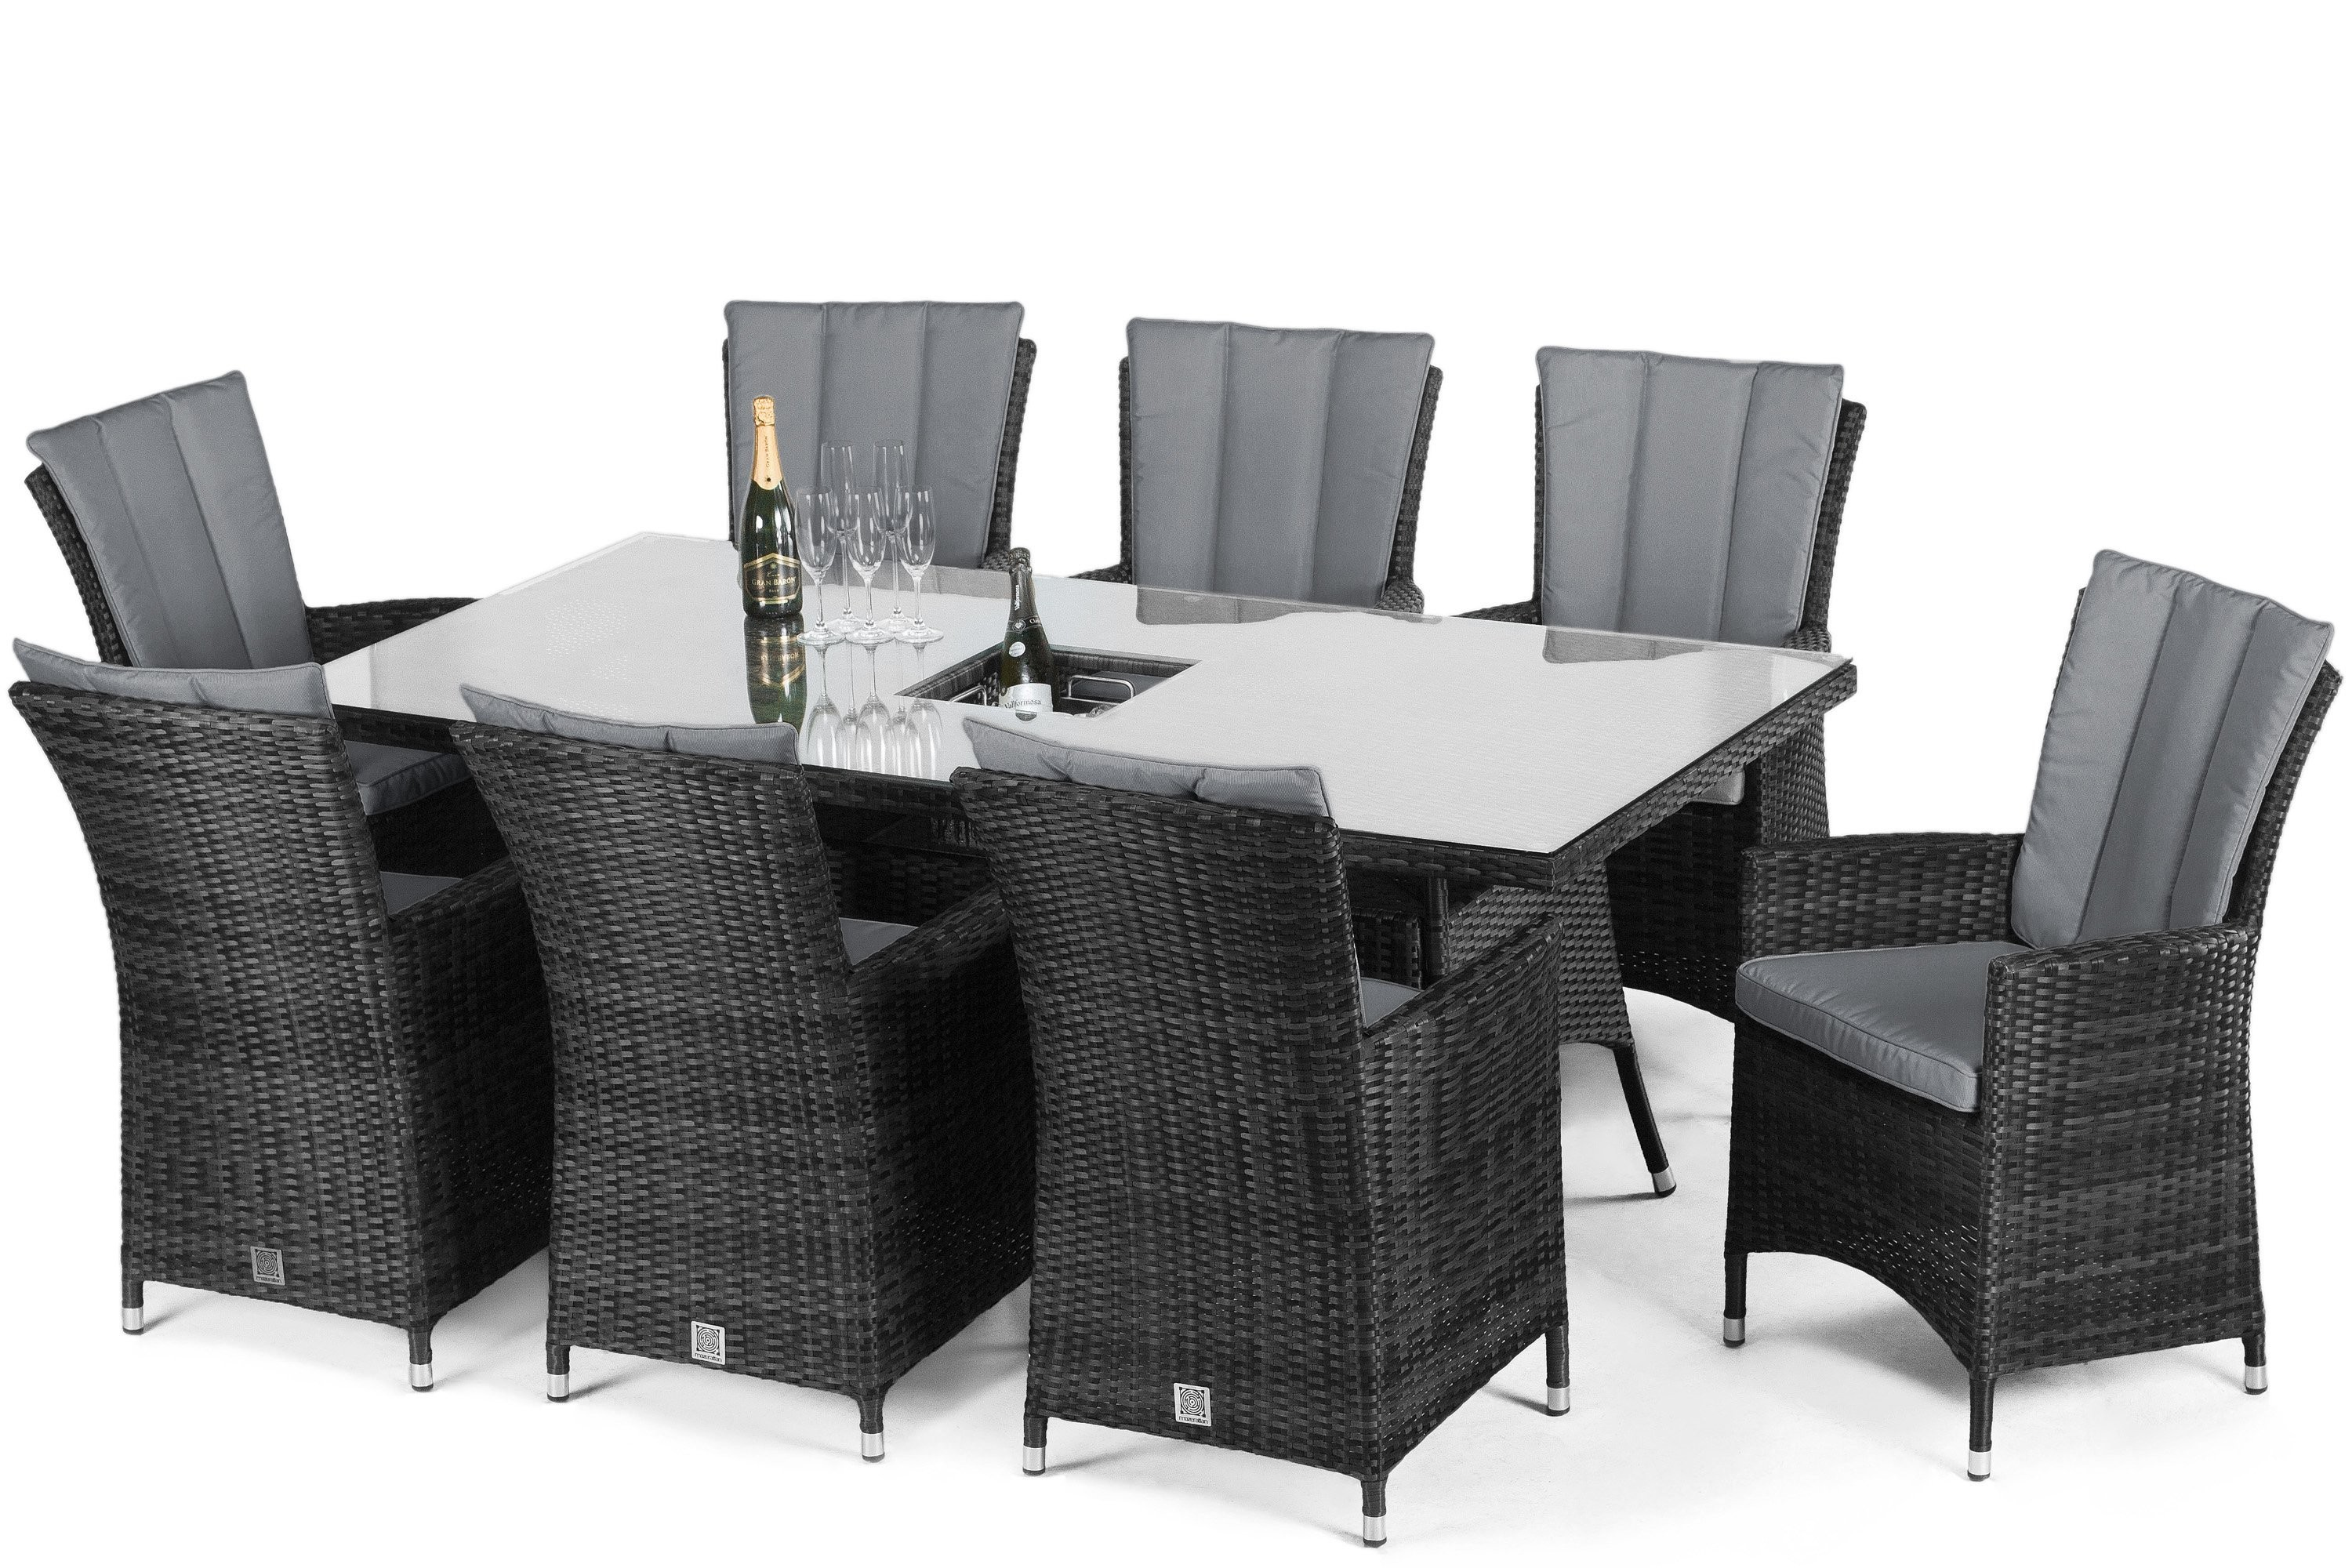 Maze rattan 8 seat rectangular Dining Set with Or Without Ice Bucket